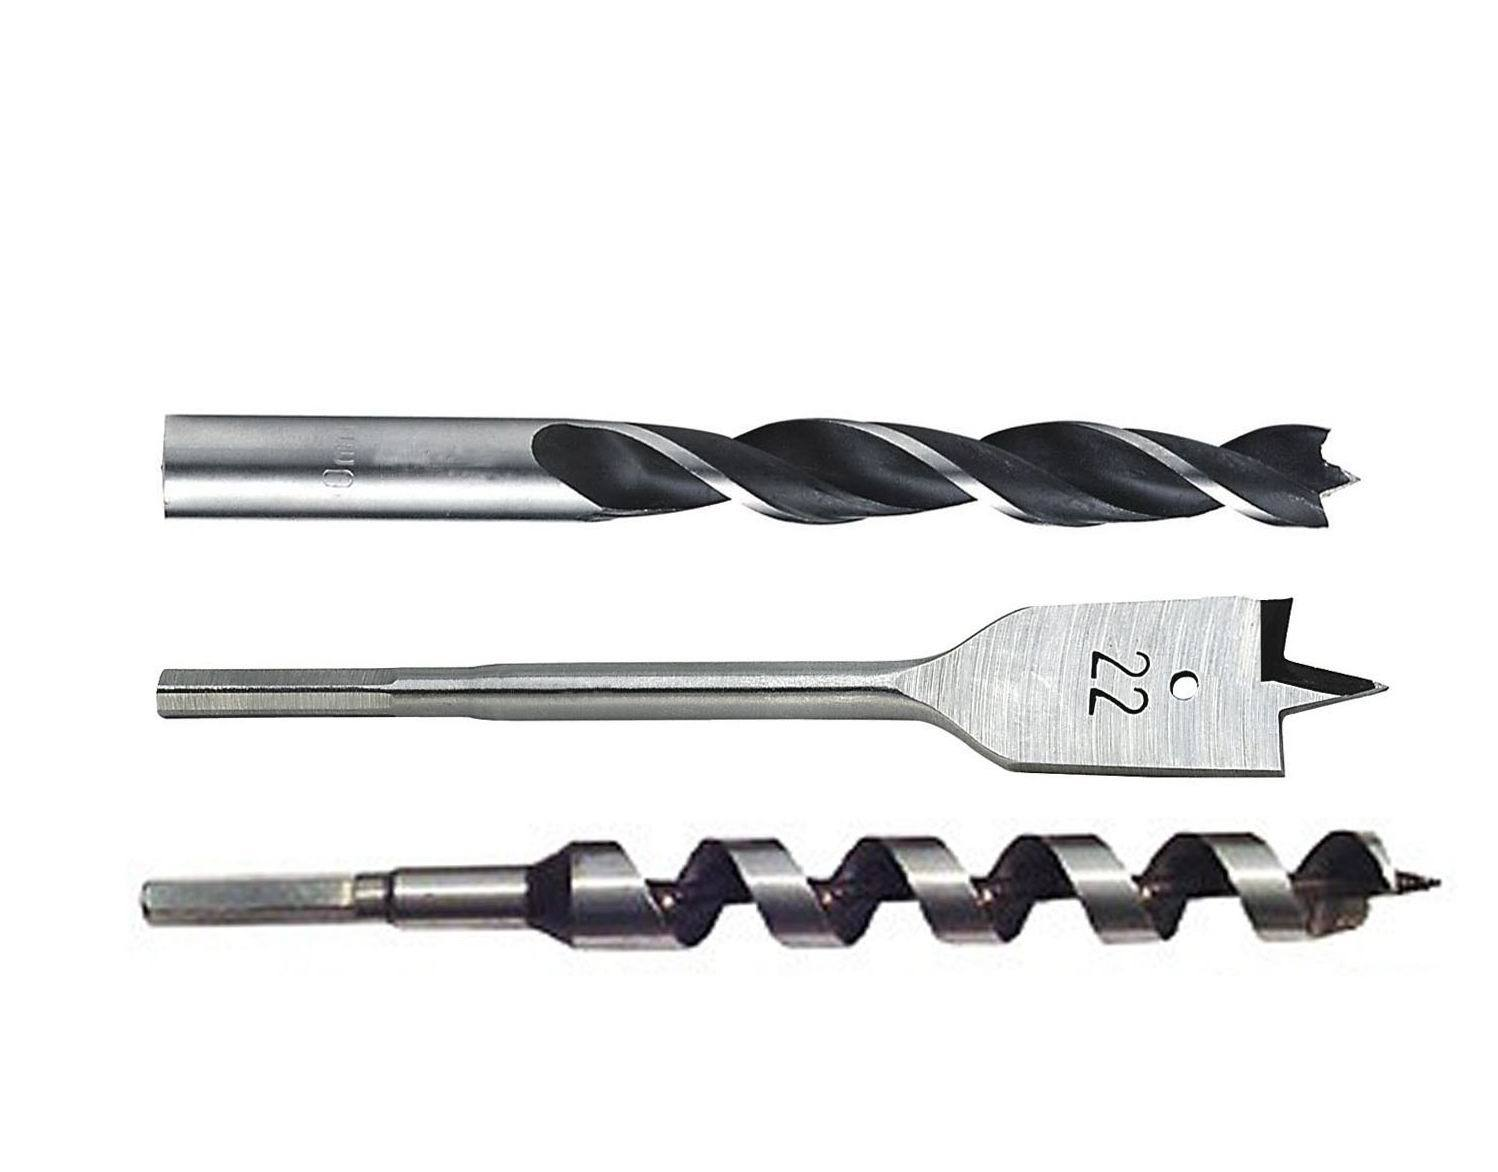 Wood Working Drill Bit